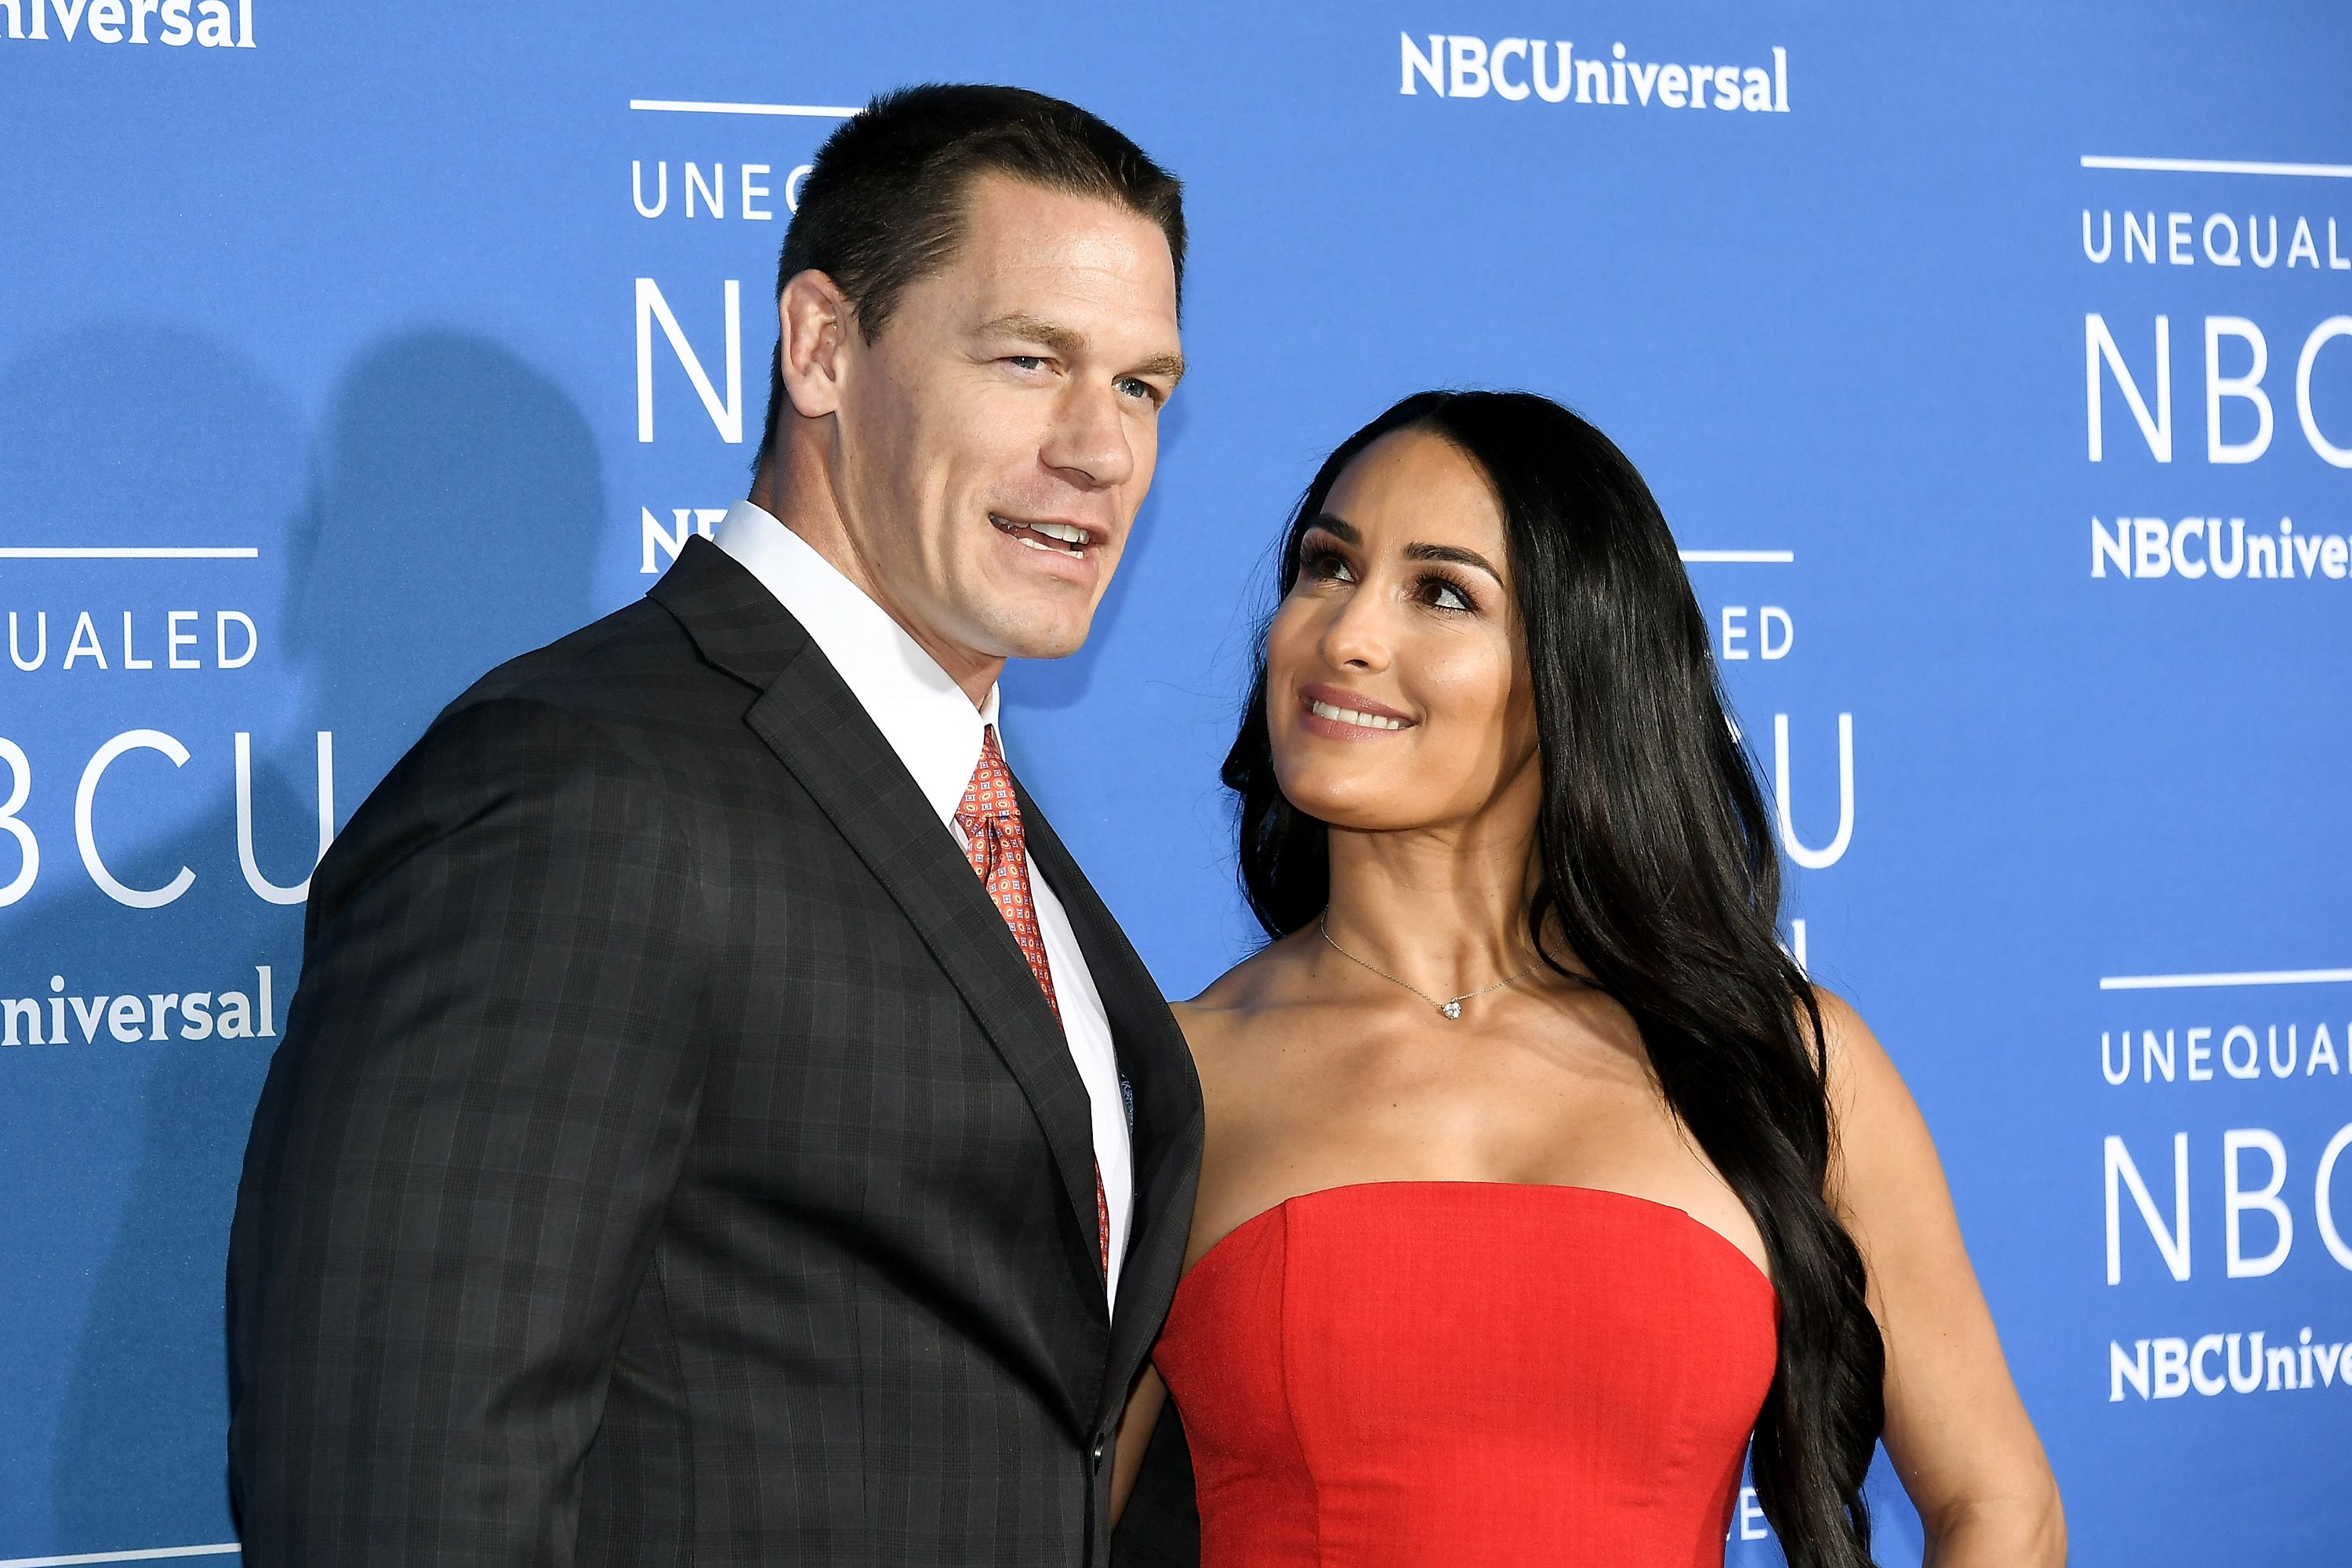 Nikki Bella wears a red dress and stares at boyfriend John Cena at an event.